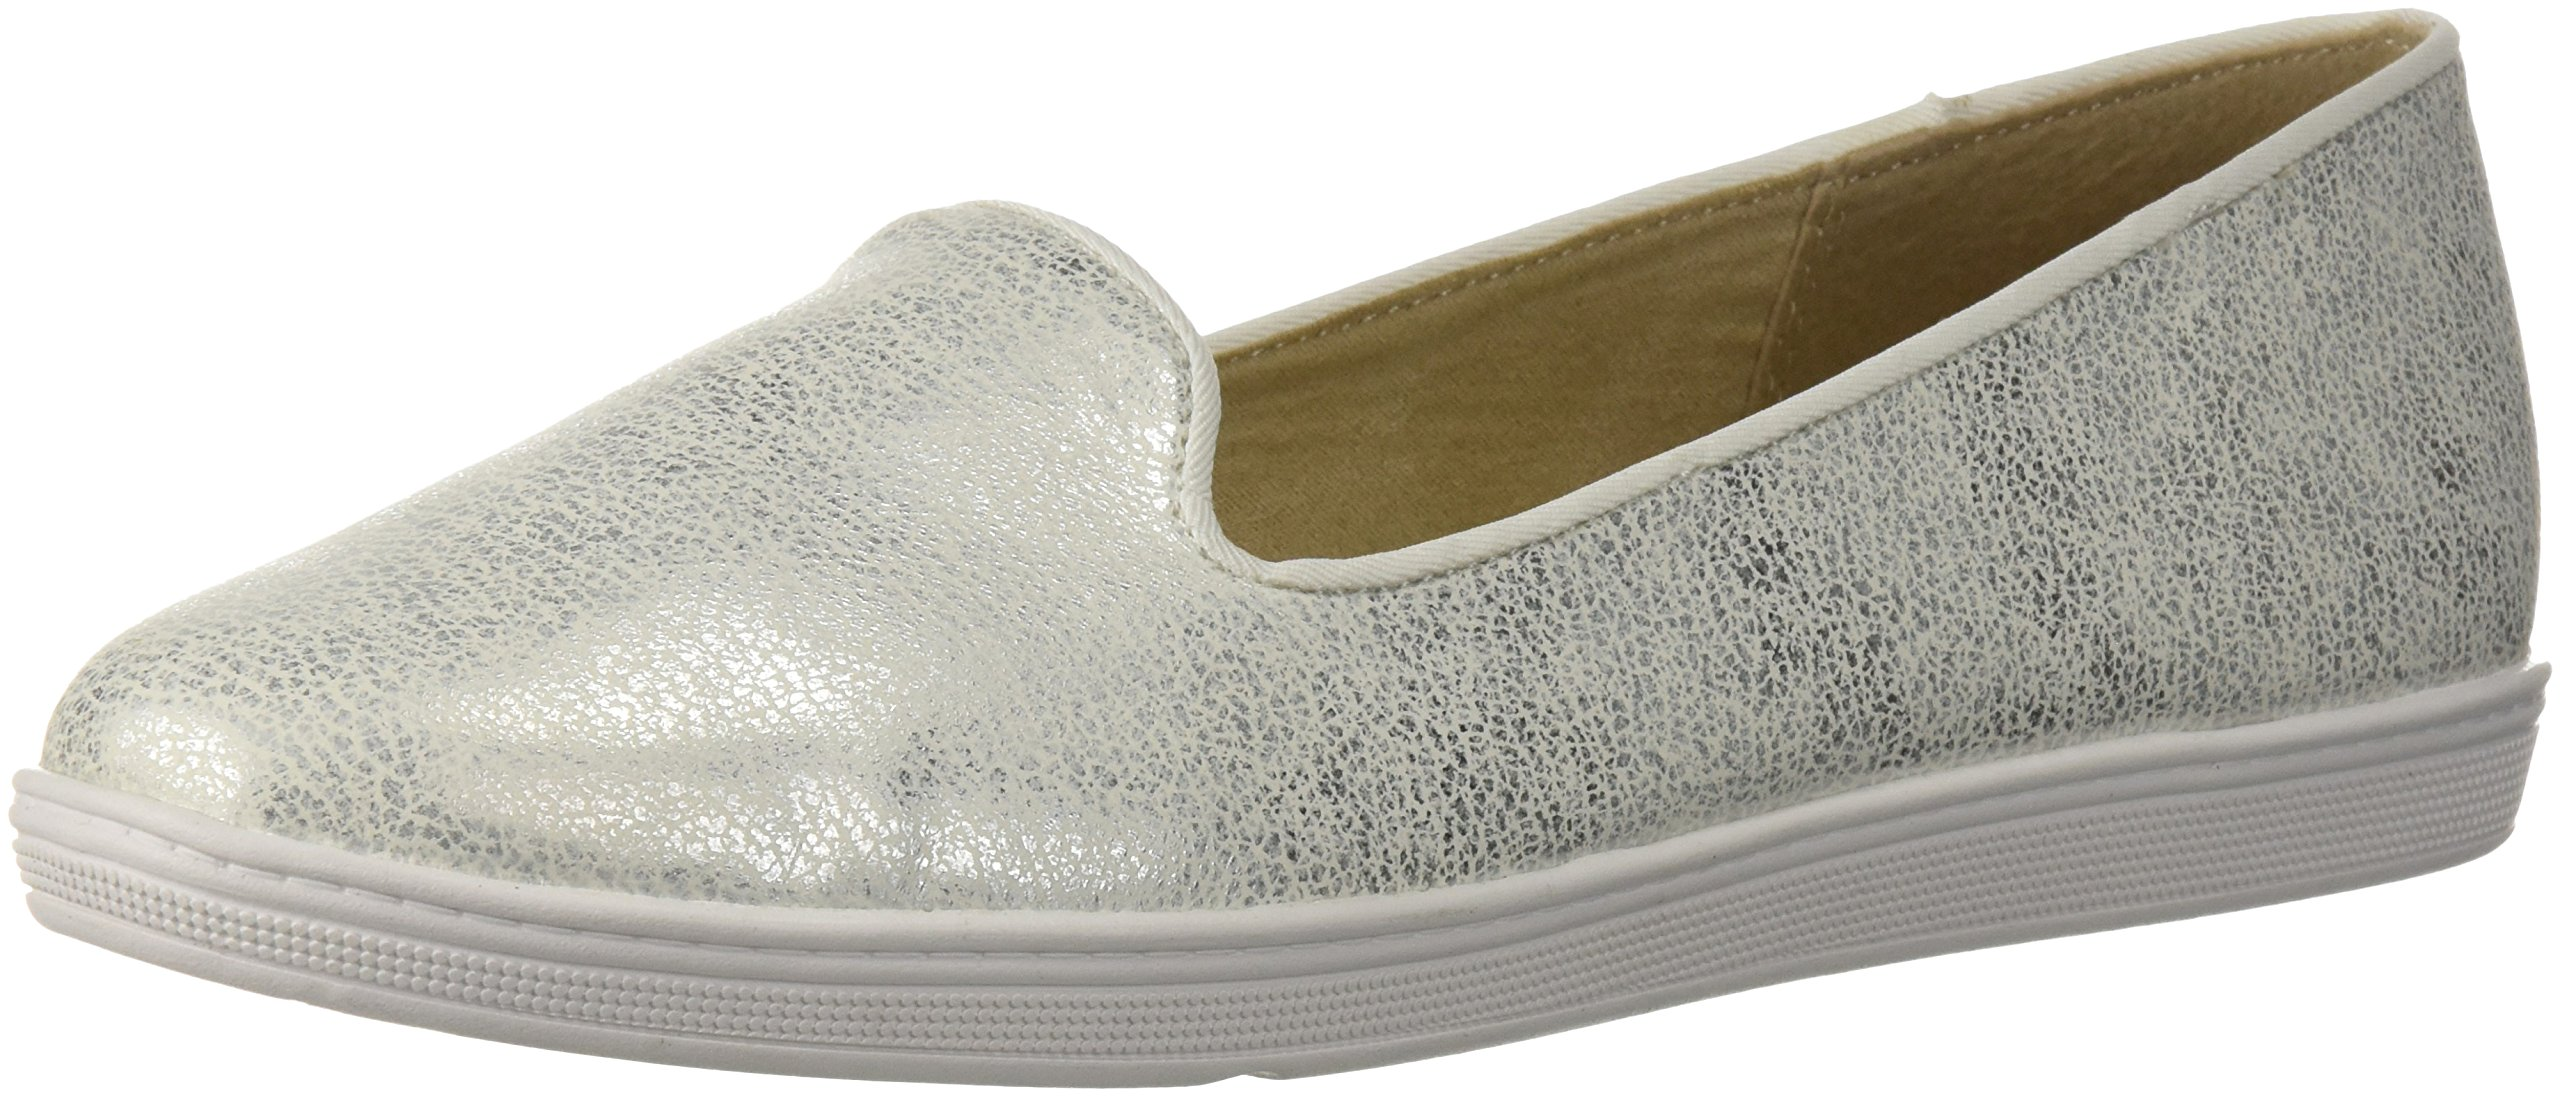 Soft Style Hush Puppies Women's Faline Loafer, White Mist, 12.0 M US